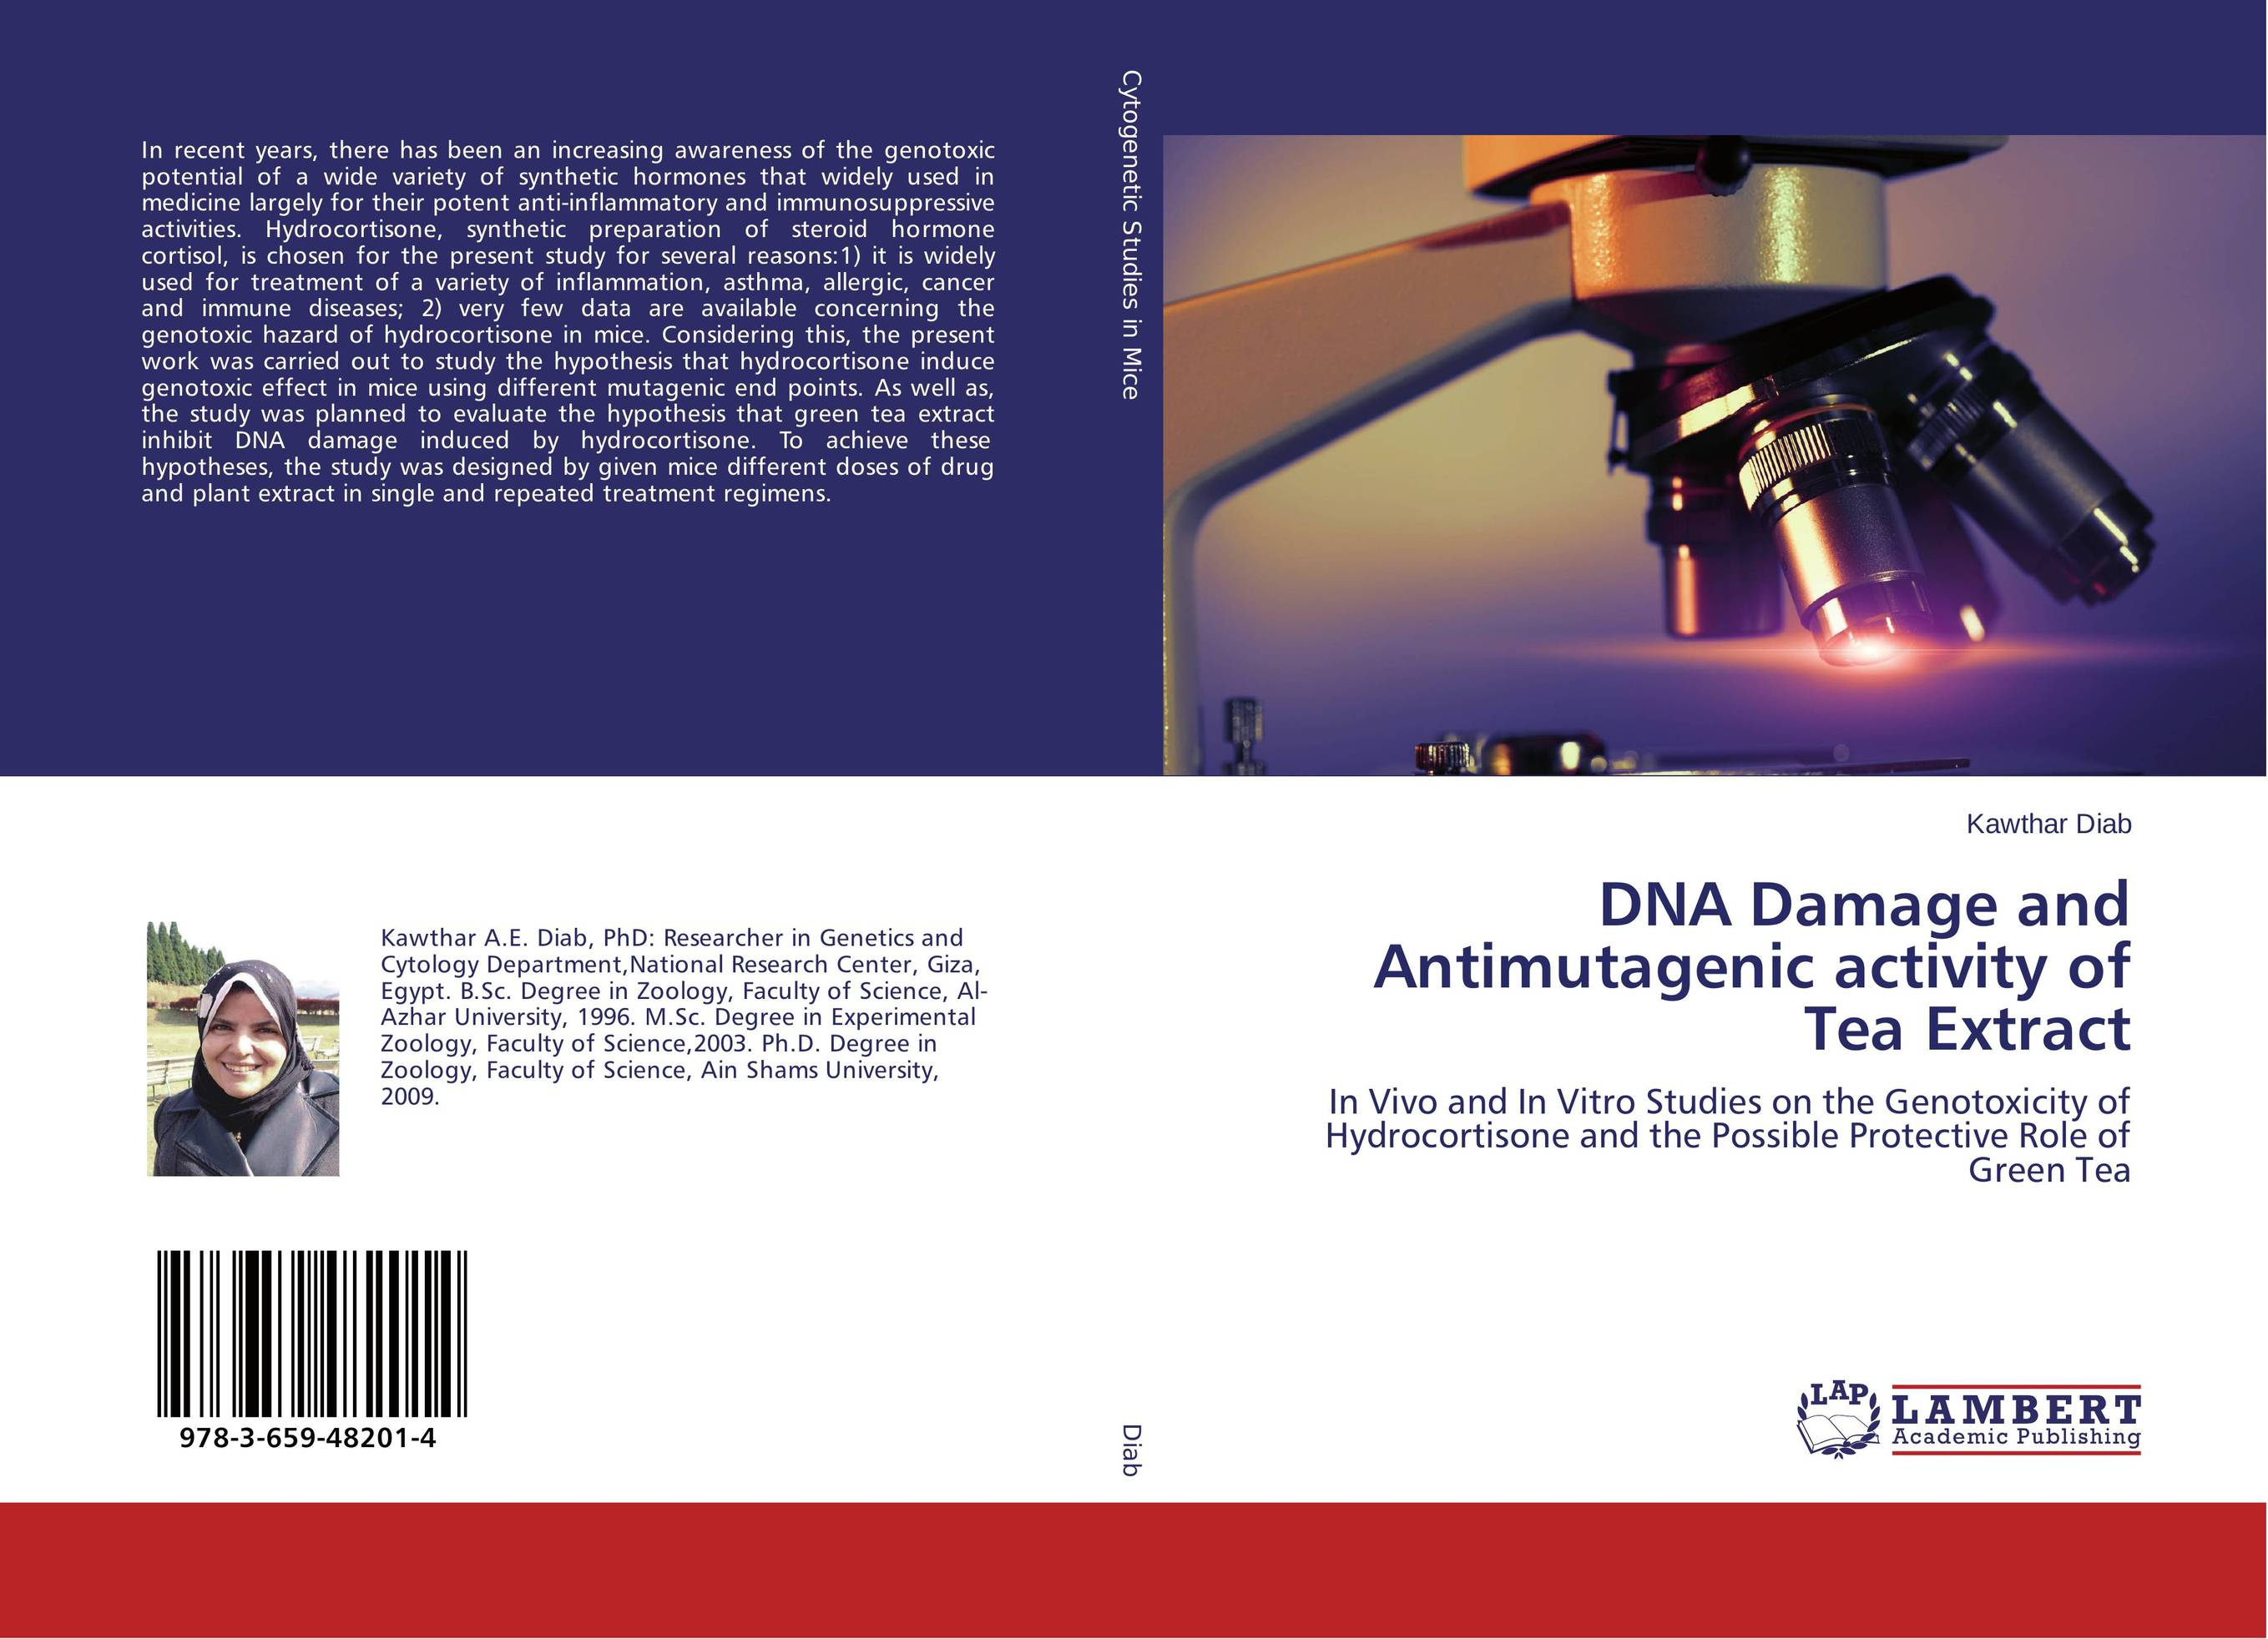 DNA Damage and Antimutagenic activity of Tea Extract genotoxic potential in fishes